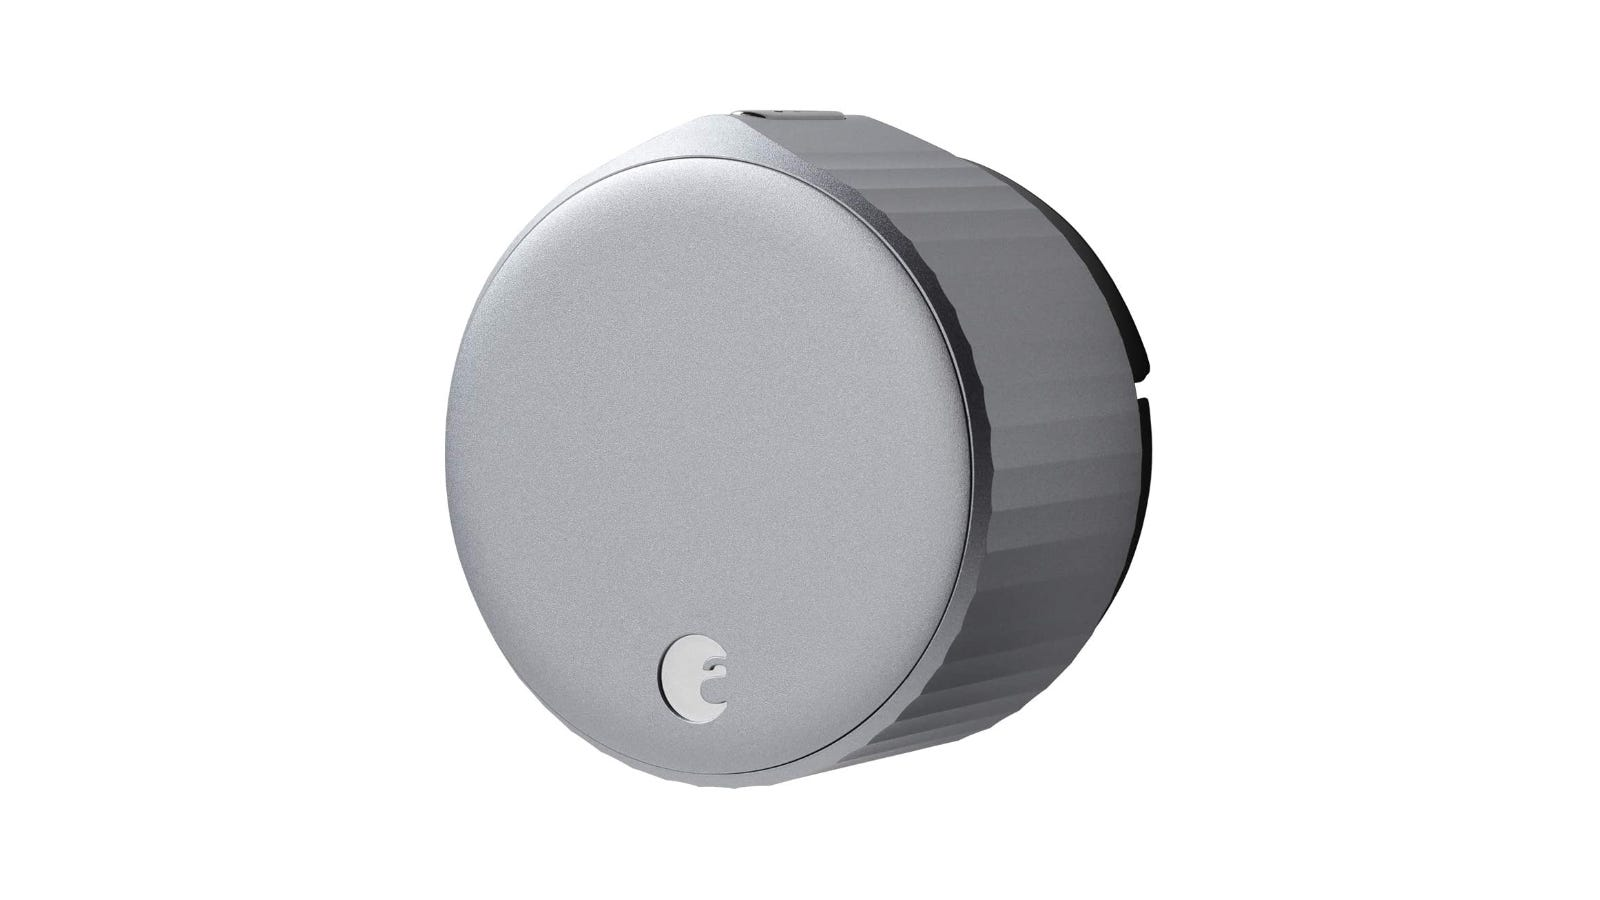 August Smart Lock against a white background